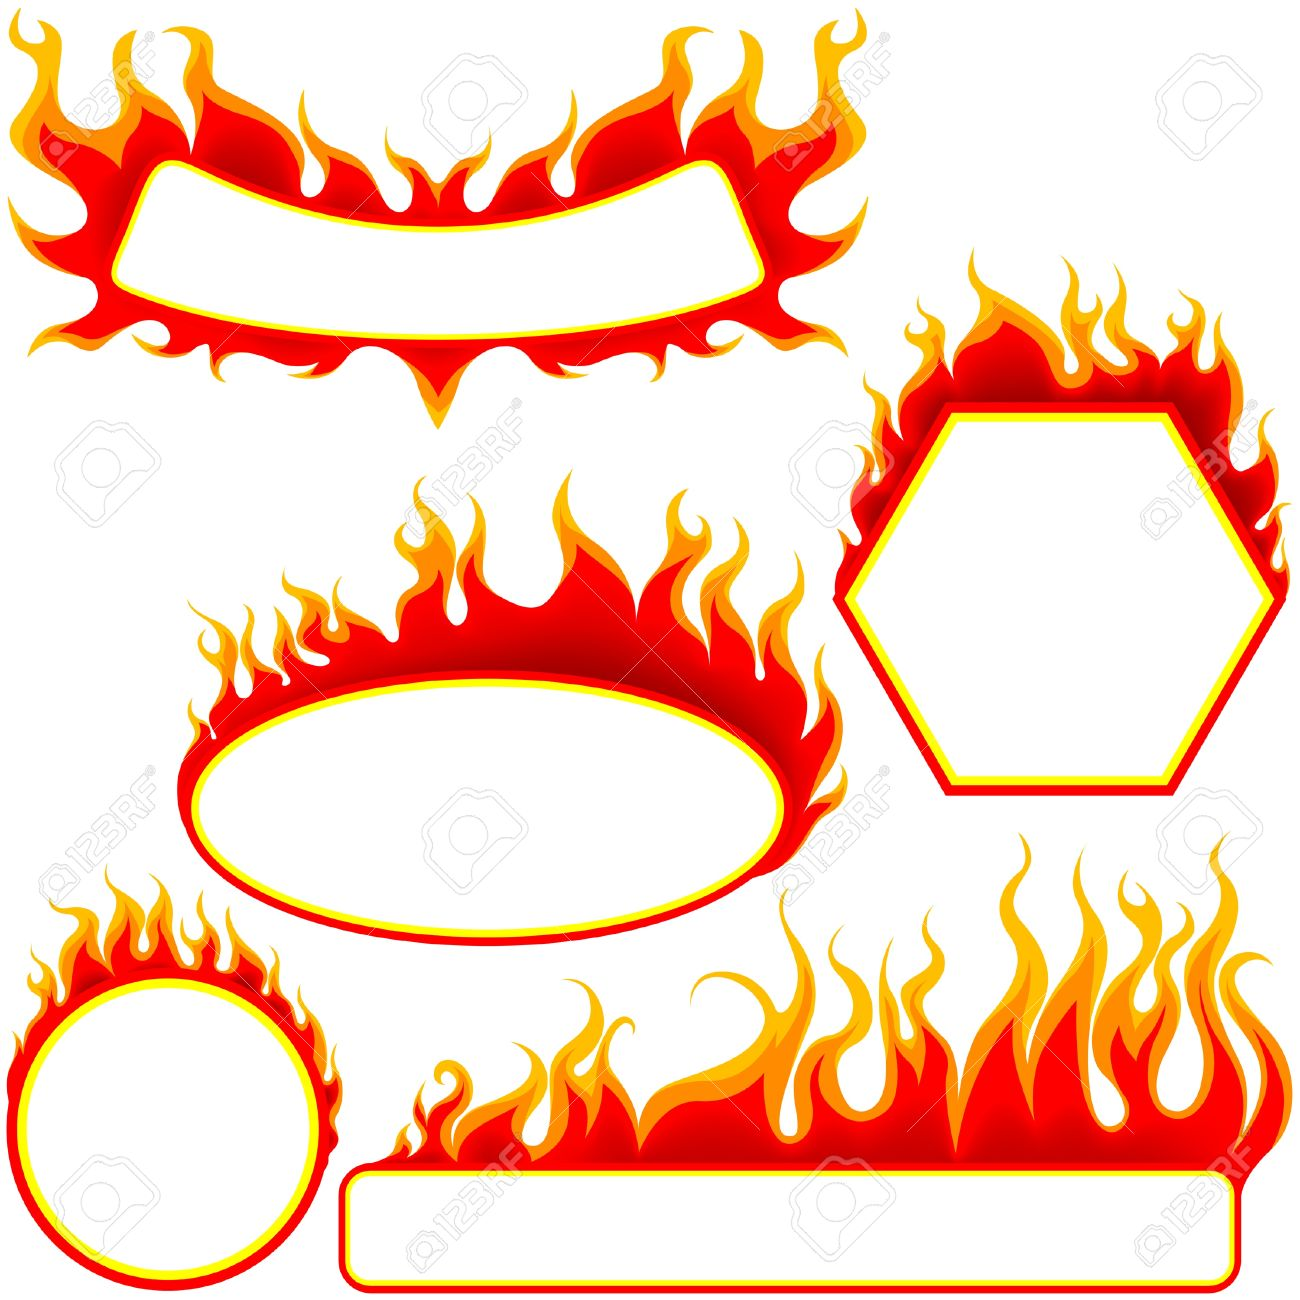 Fire Banners Set - colored illustrations as vector Stock Vector - 4215638